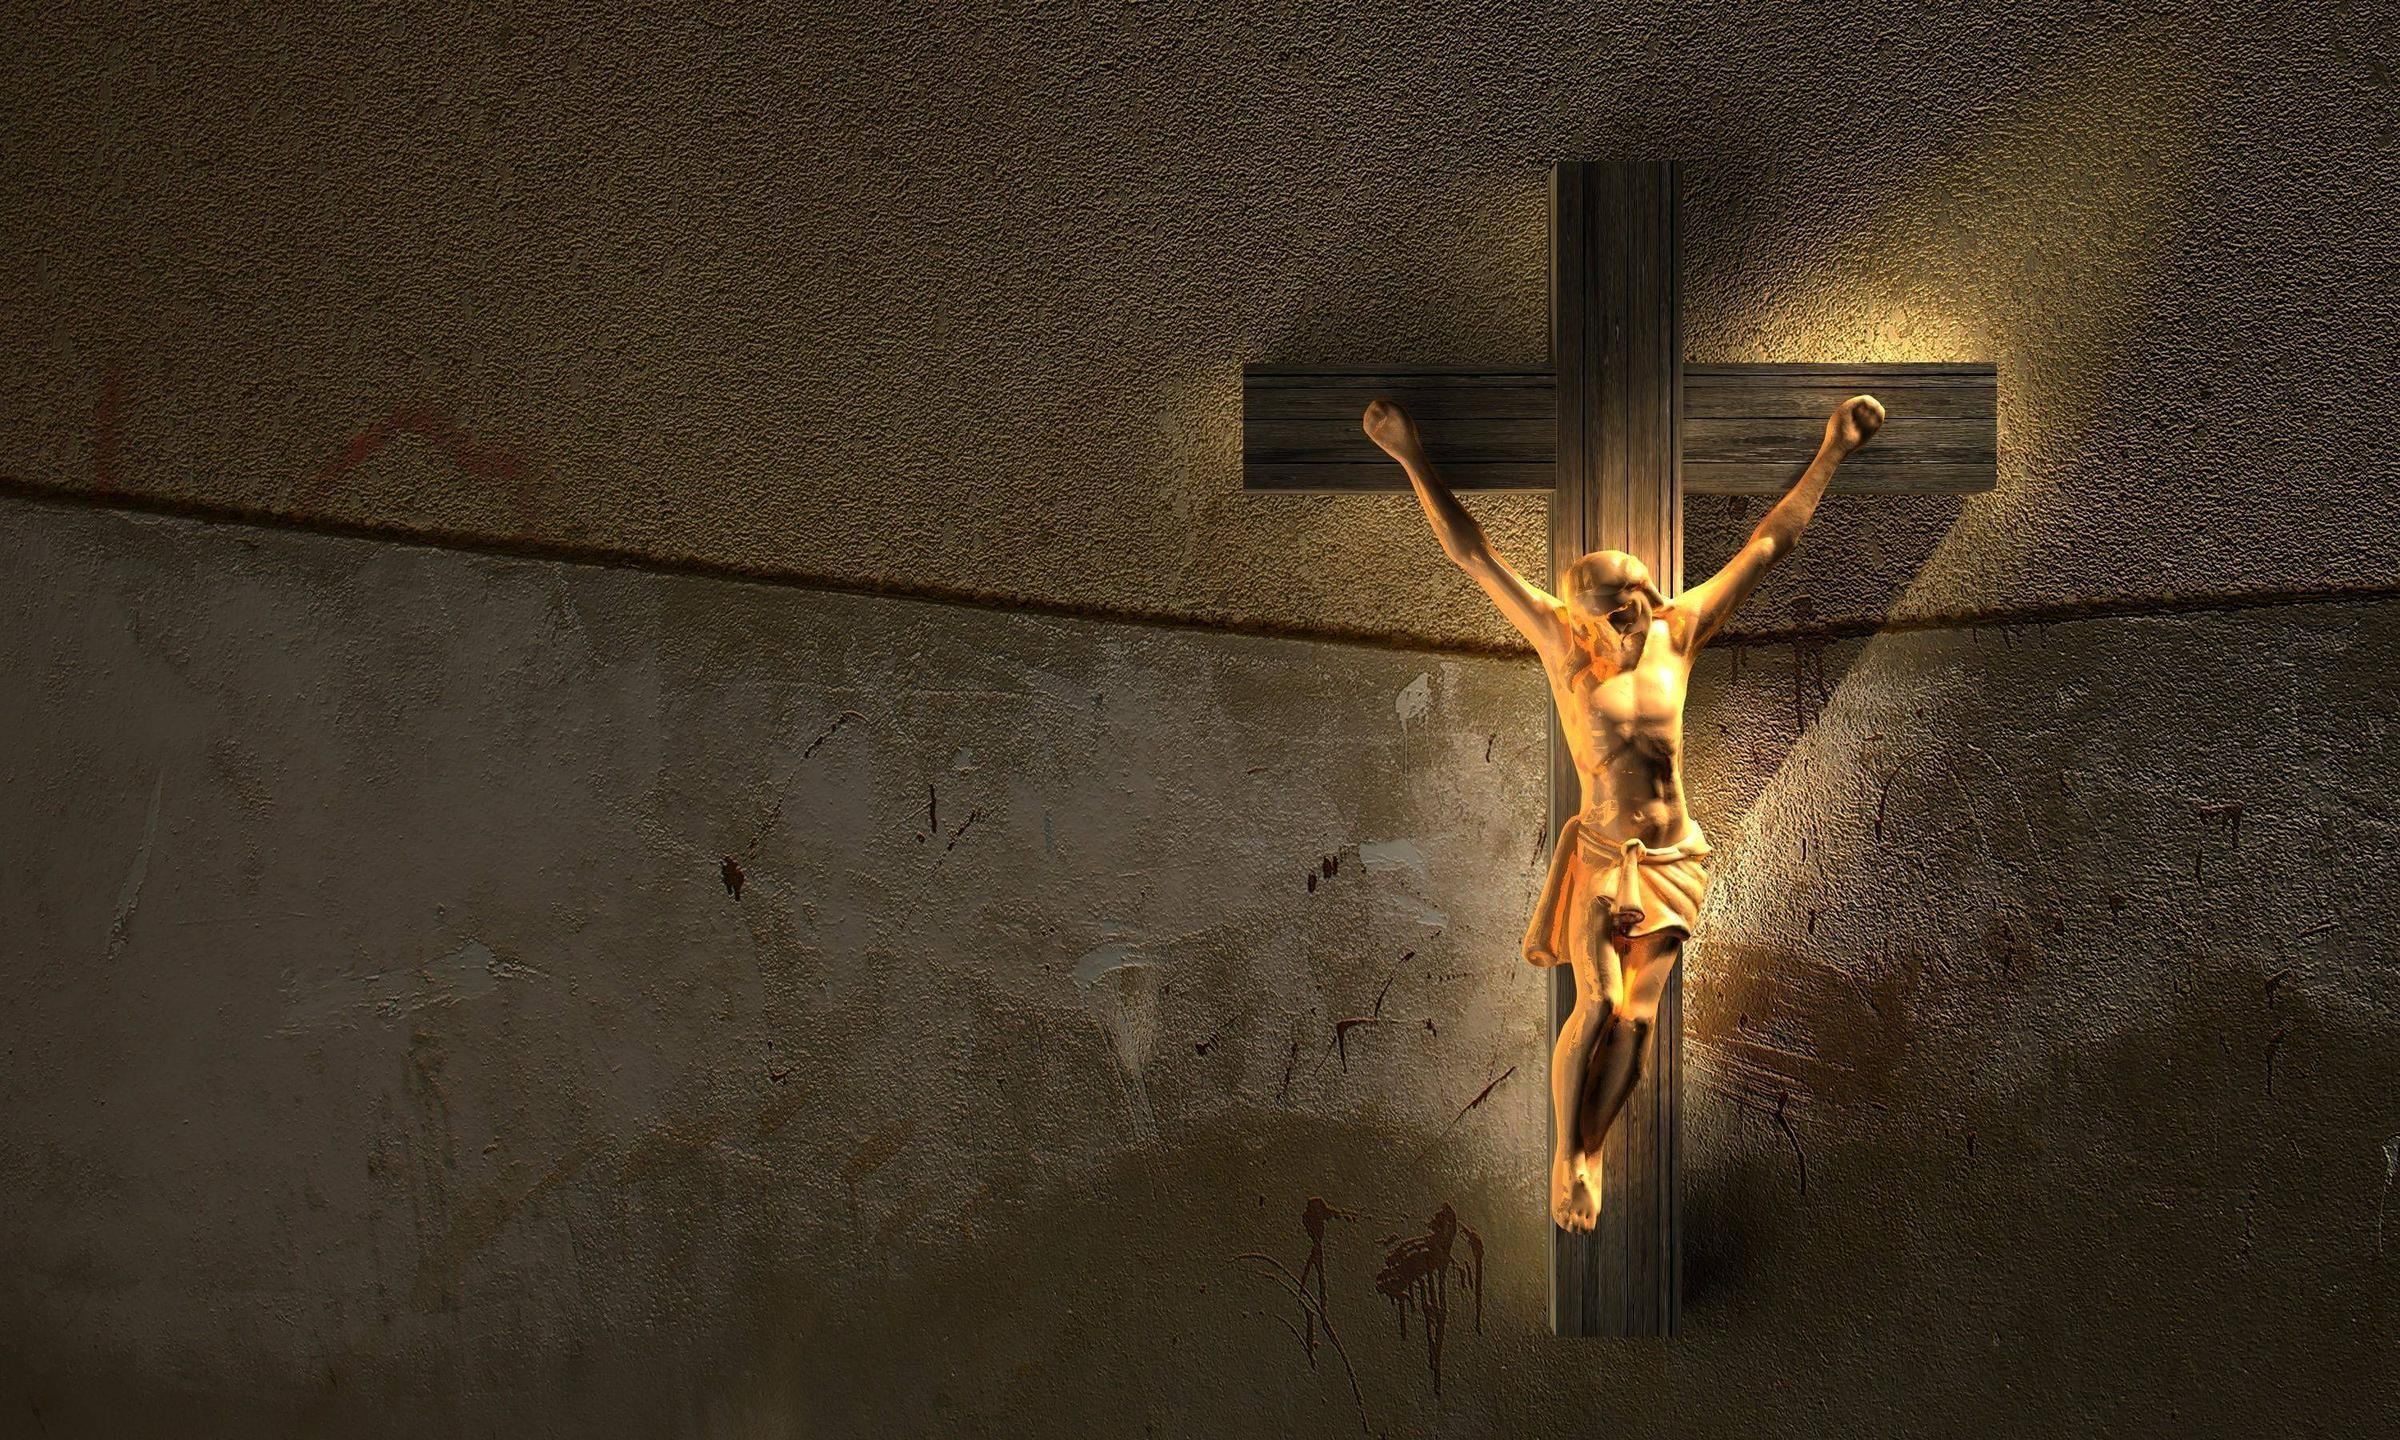 Religious Backgrounds Image - Wallpaper Cave